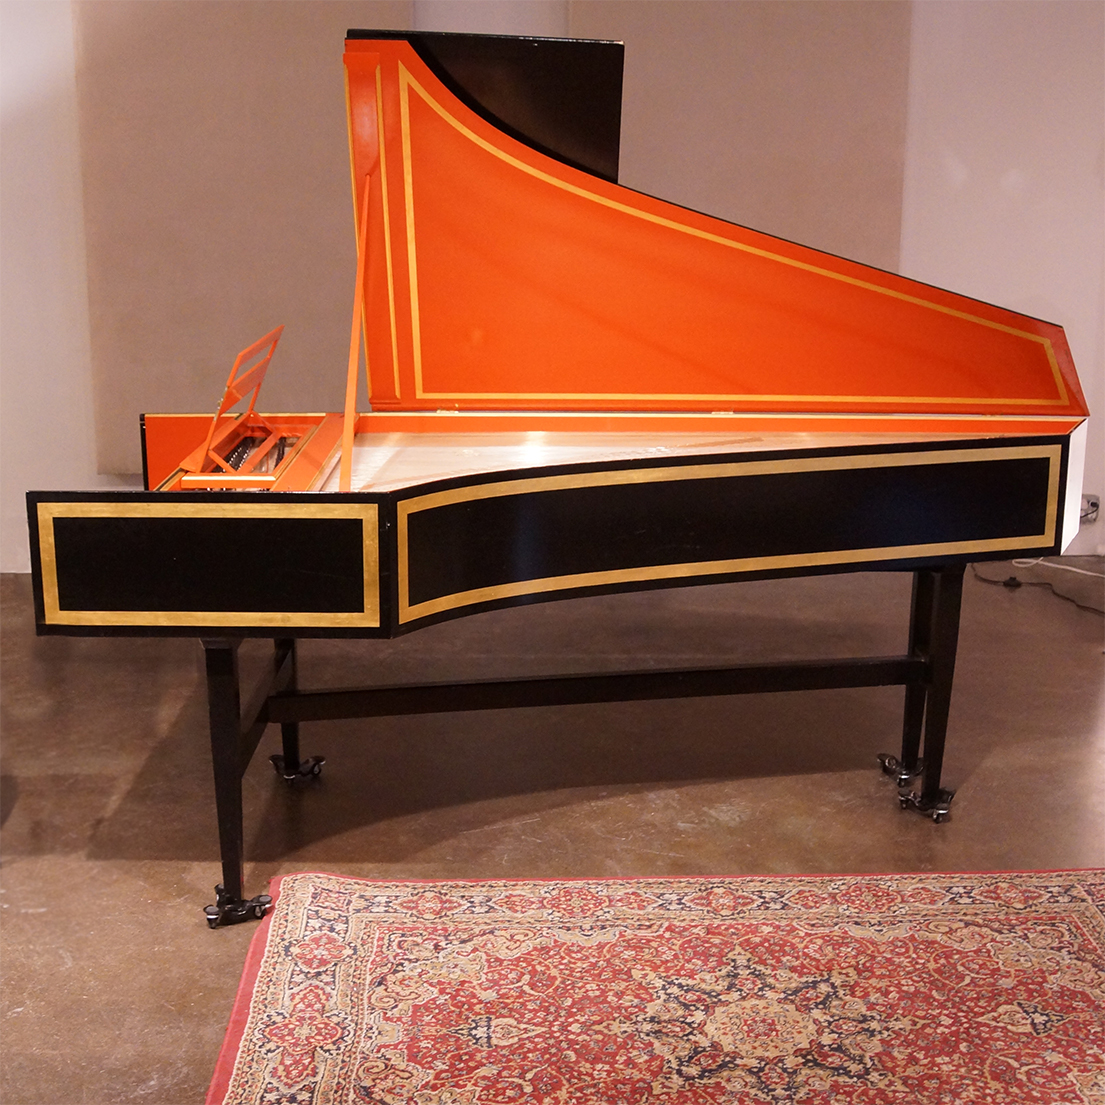 DOWD French double-manual harpsichord • 2x8' 1x4' FF-f''' front 8' buff • Made in Boston, 1977